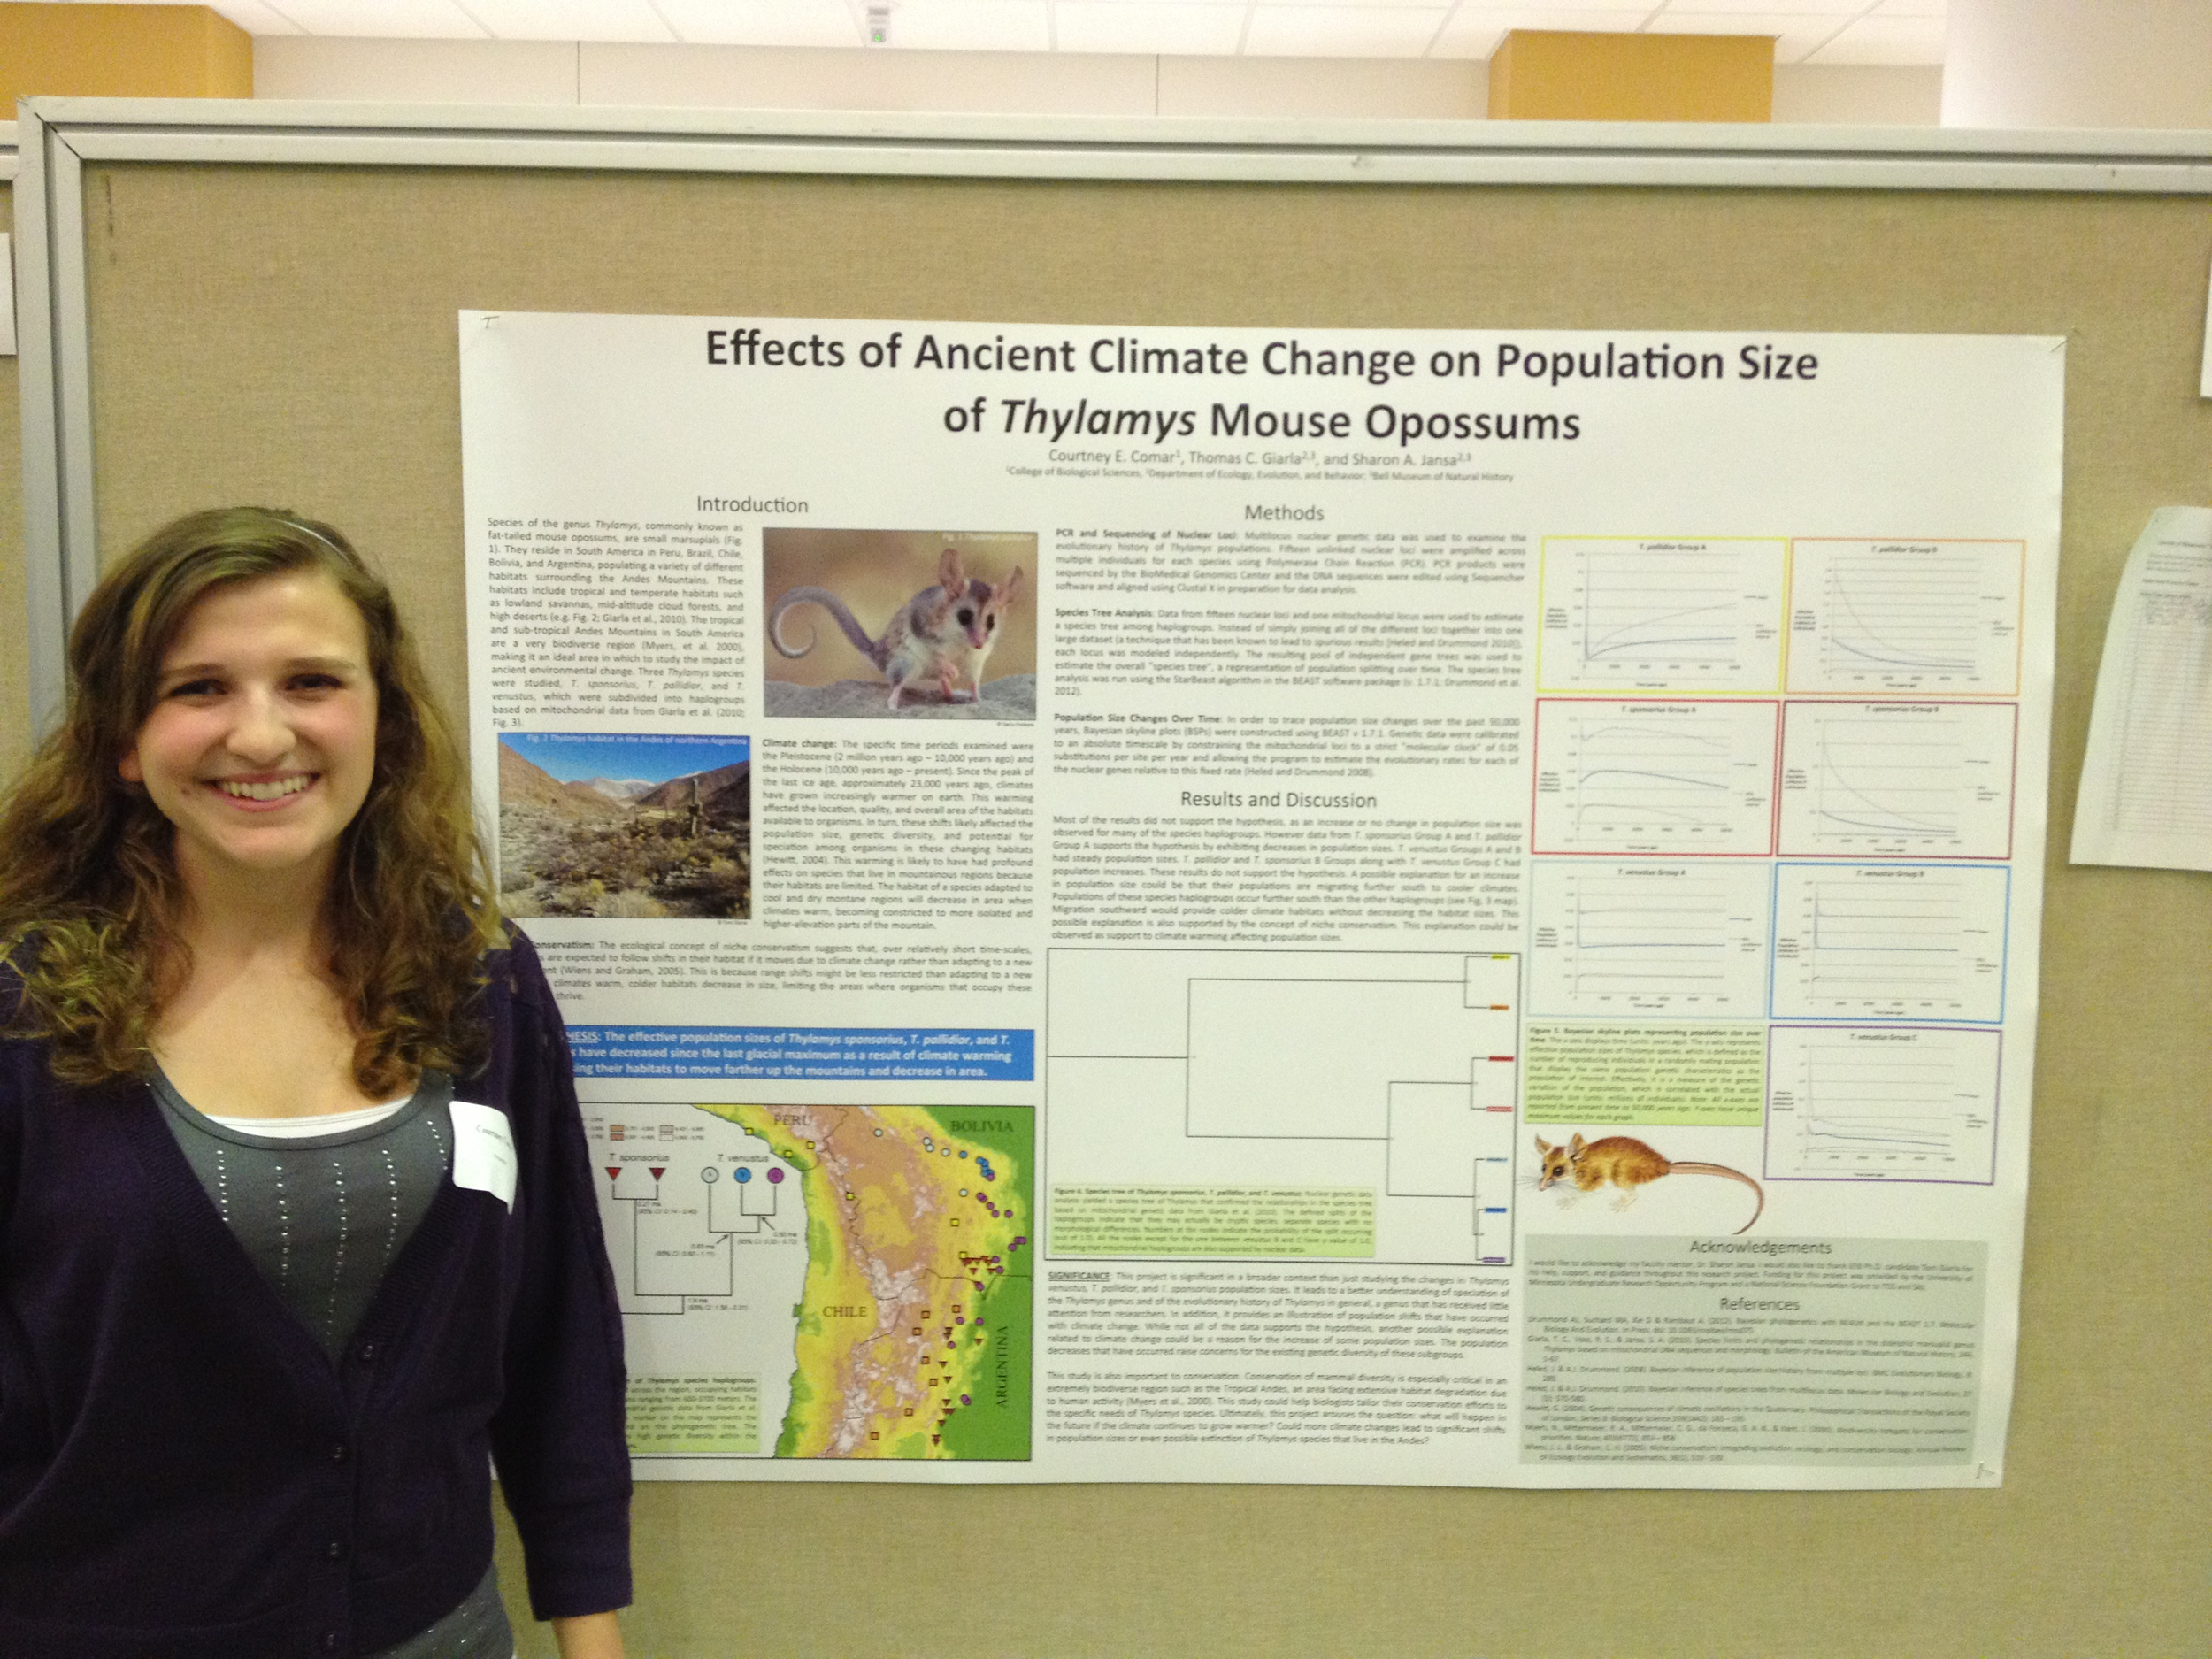 U of M advisee Courtney Comar presents her work in April 2012